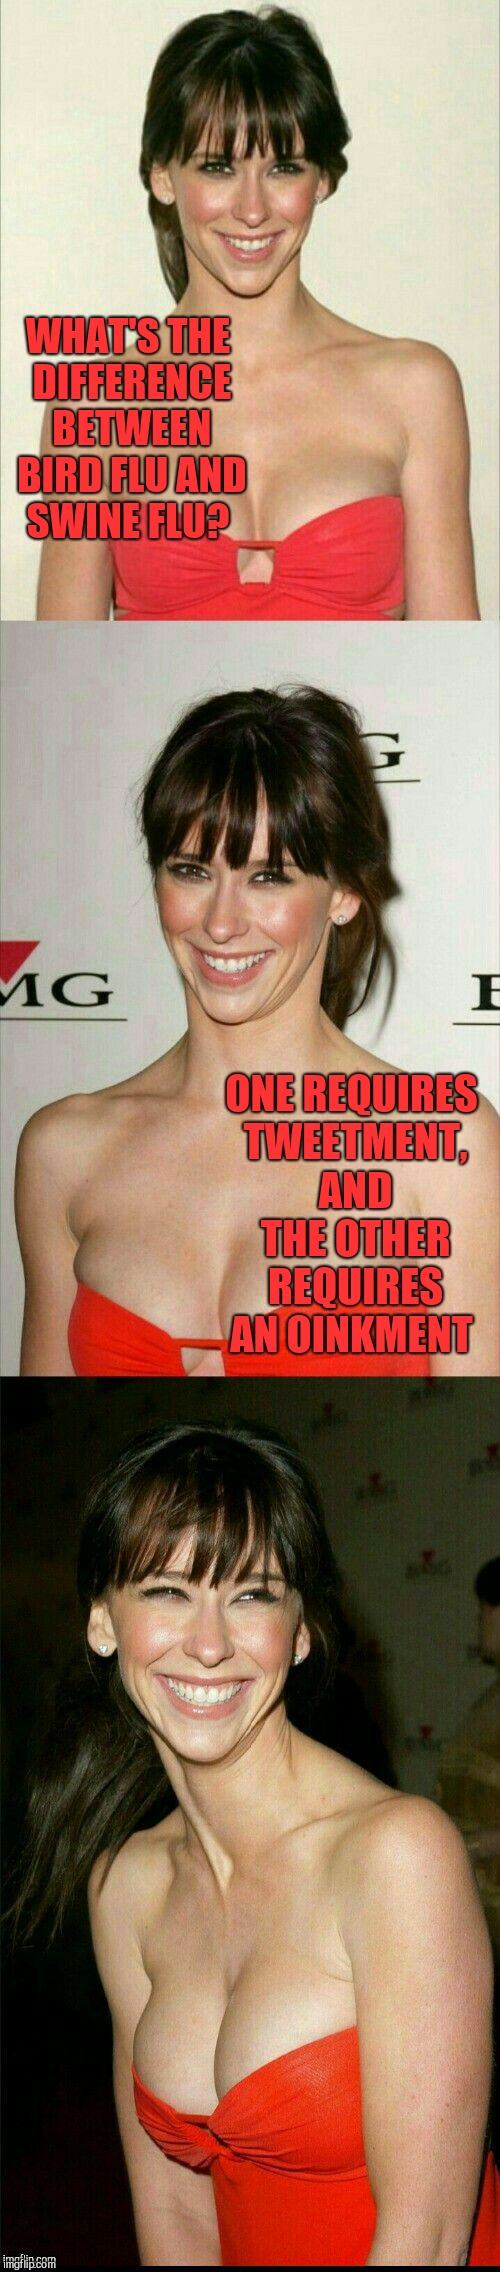 Jennifer Love Hewitt joke template  | WHAT'S THE DIFFERENCE BETWEEN BIRD FLU AND SWINE FLU? ONE REQUIRES TWEETMENT, AND THE OTHER REQUIRES AN OINKMENT | image tagged in jennifer love hewitt joke template,jbmemegeek,jennifer love hewitt,bad puns | made w/ Imgflip meme maker